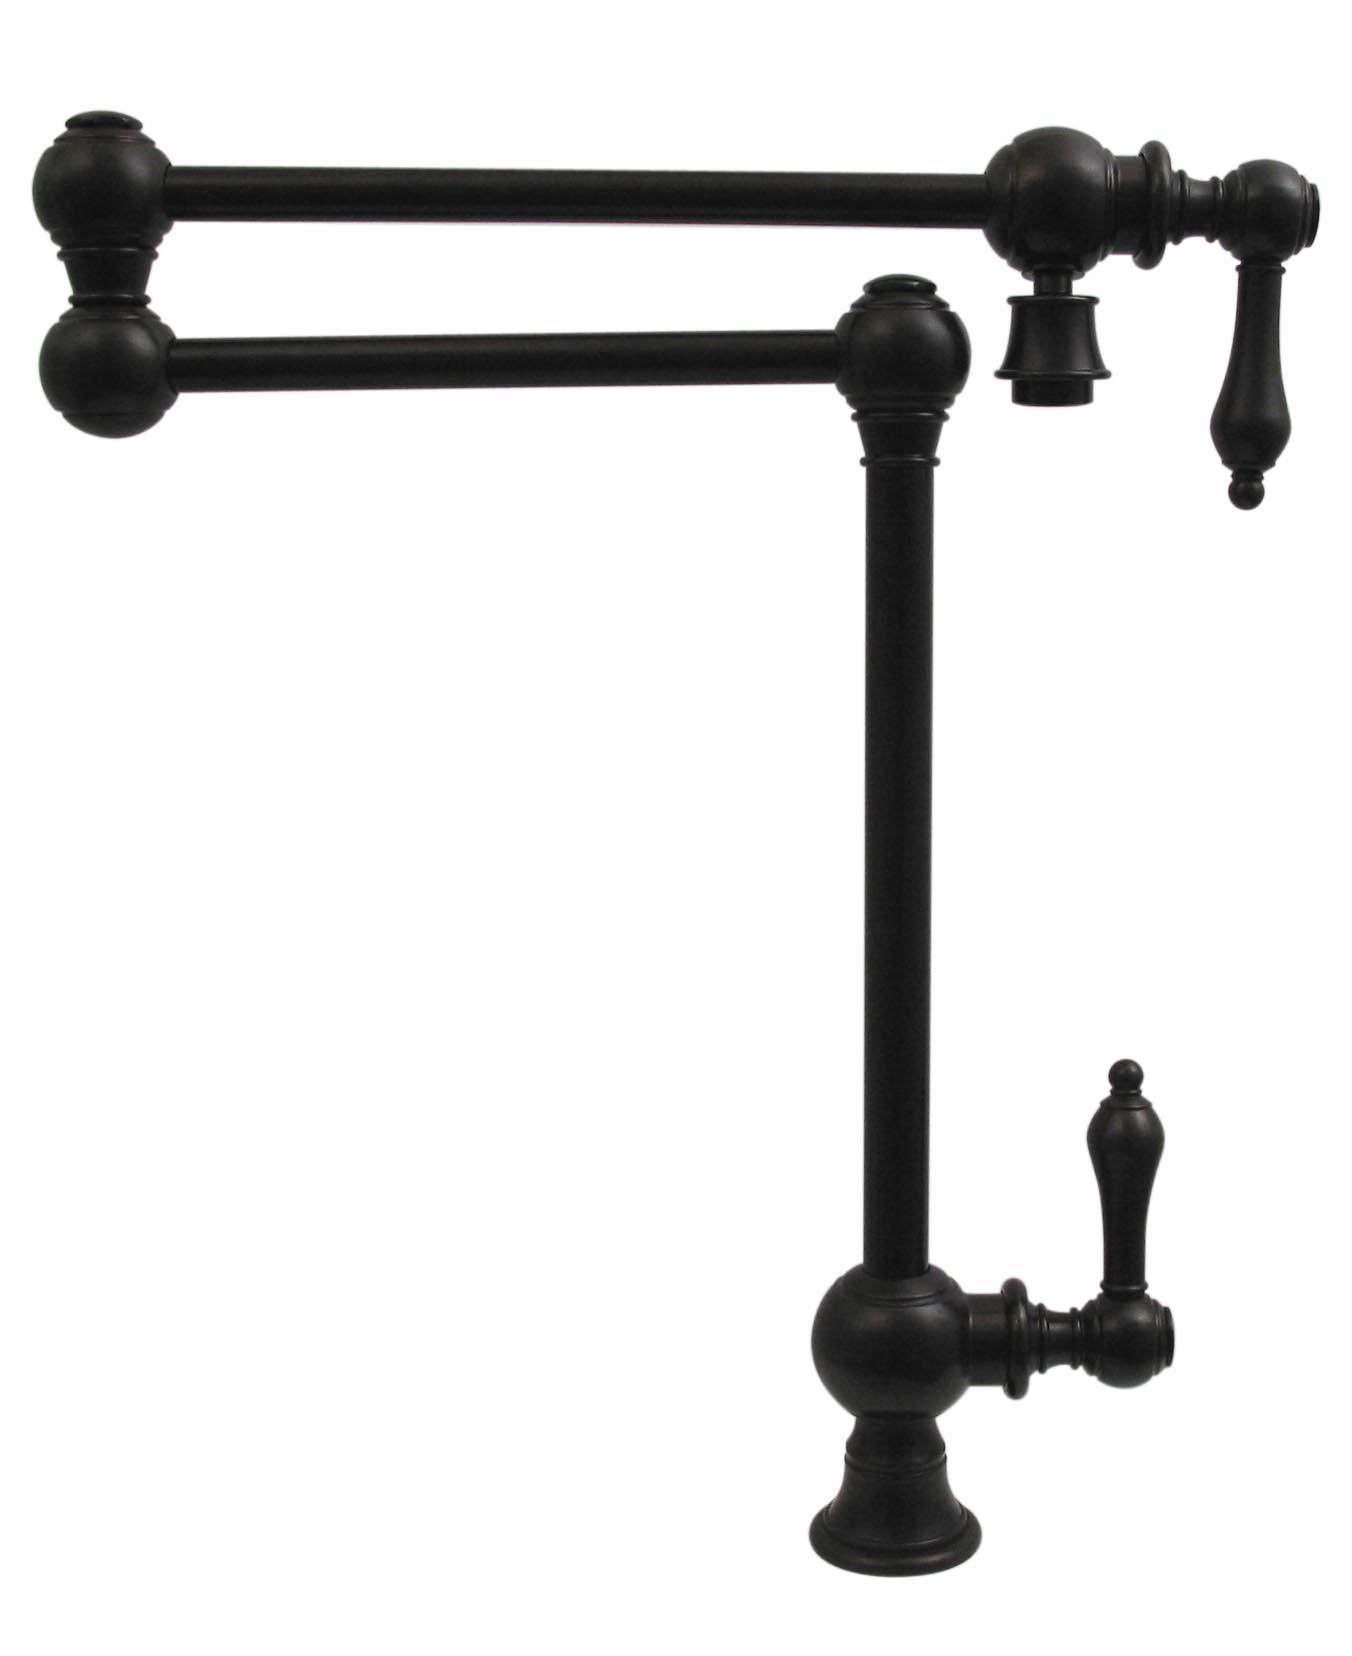 Patented Traditional Deck Mount Vintage Iii Pot Filler Faucet Whkpfdlv3 9555 With Cross Handle Shown In Oil Rubbed Bronze Whitehaus Potfiller Kitchen